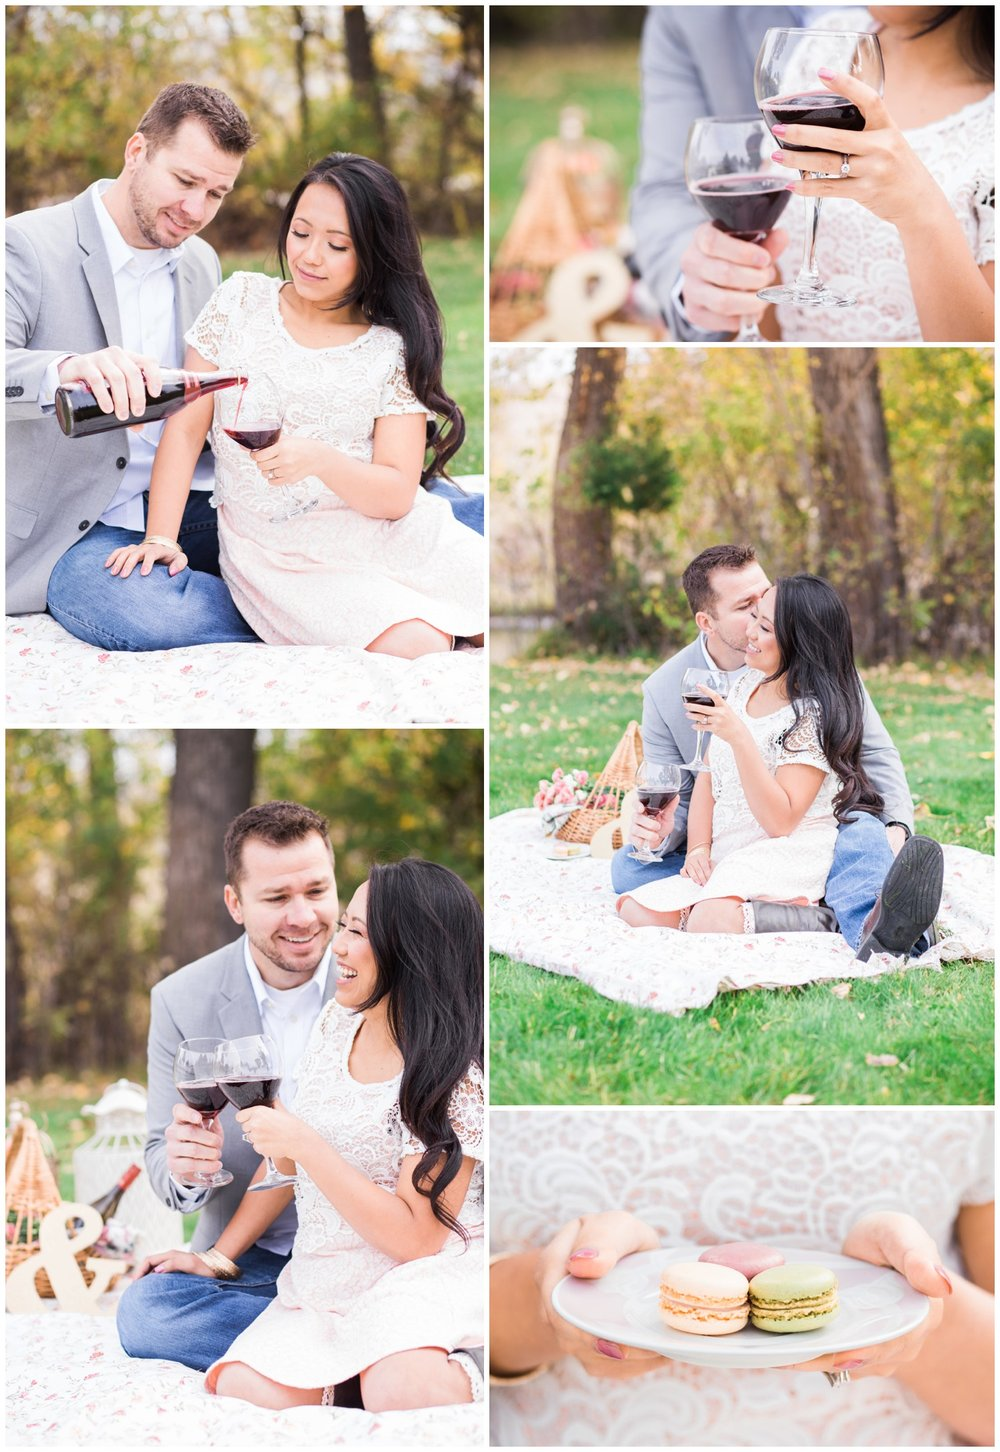 Young couple engagement photos, picnic theme, wine, macarons